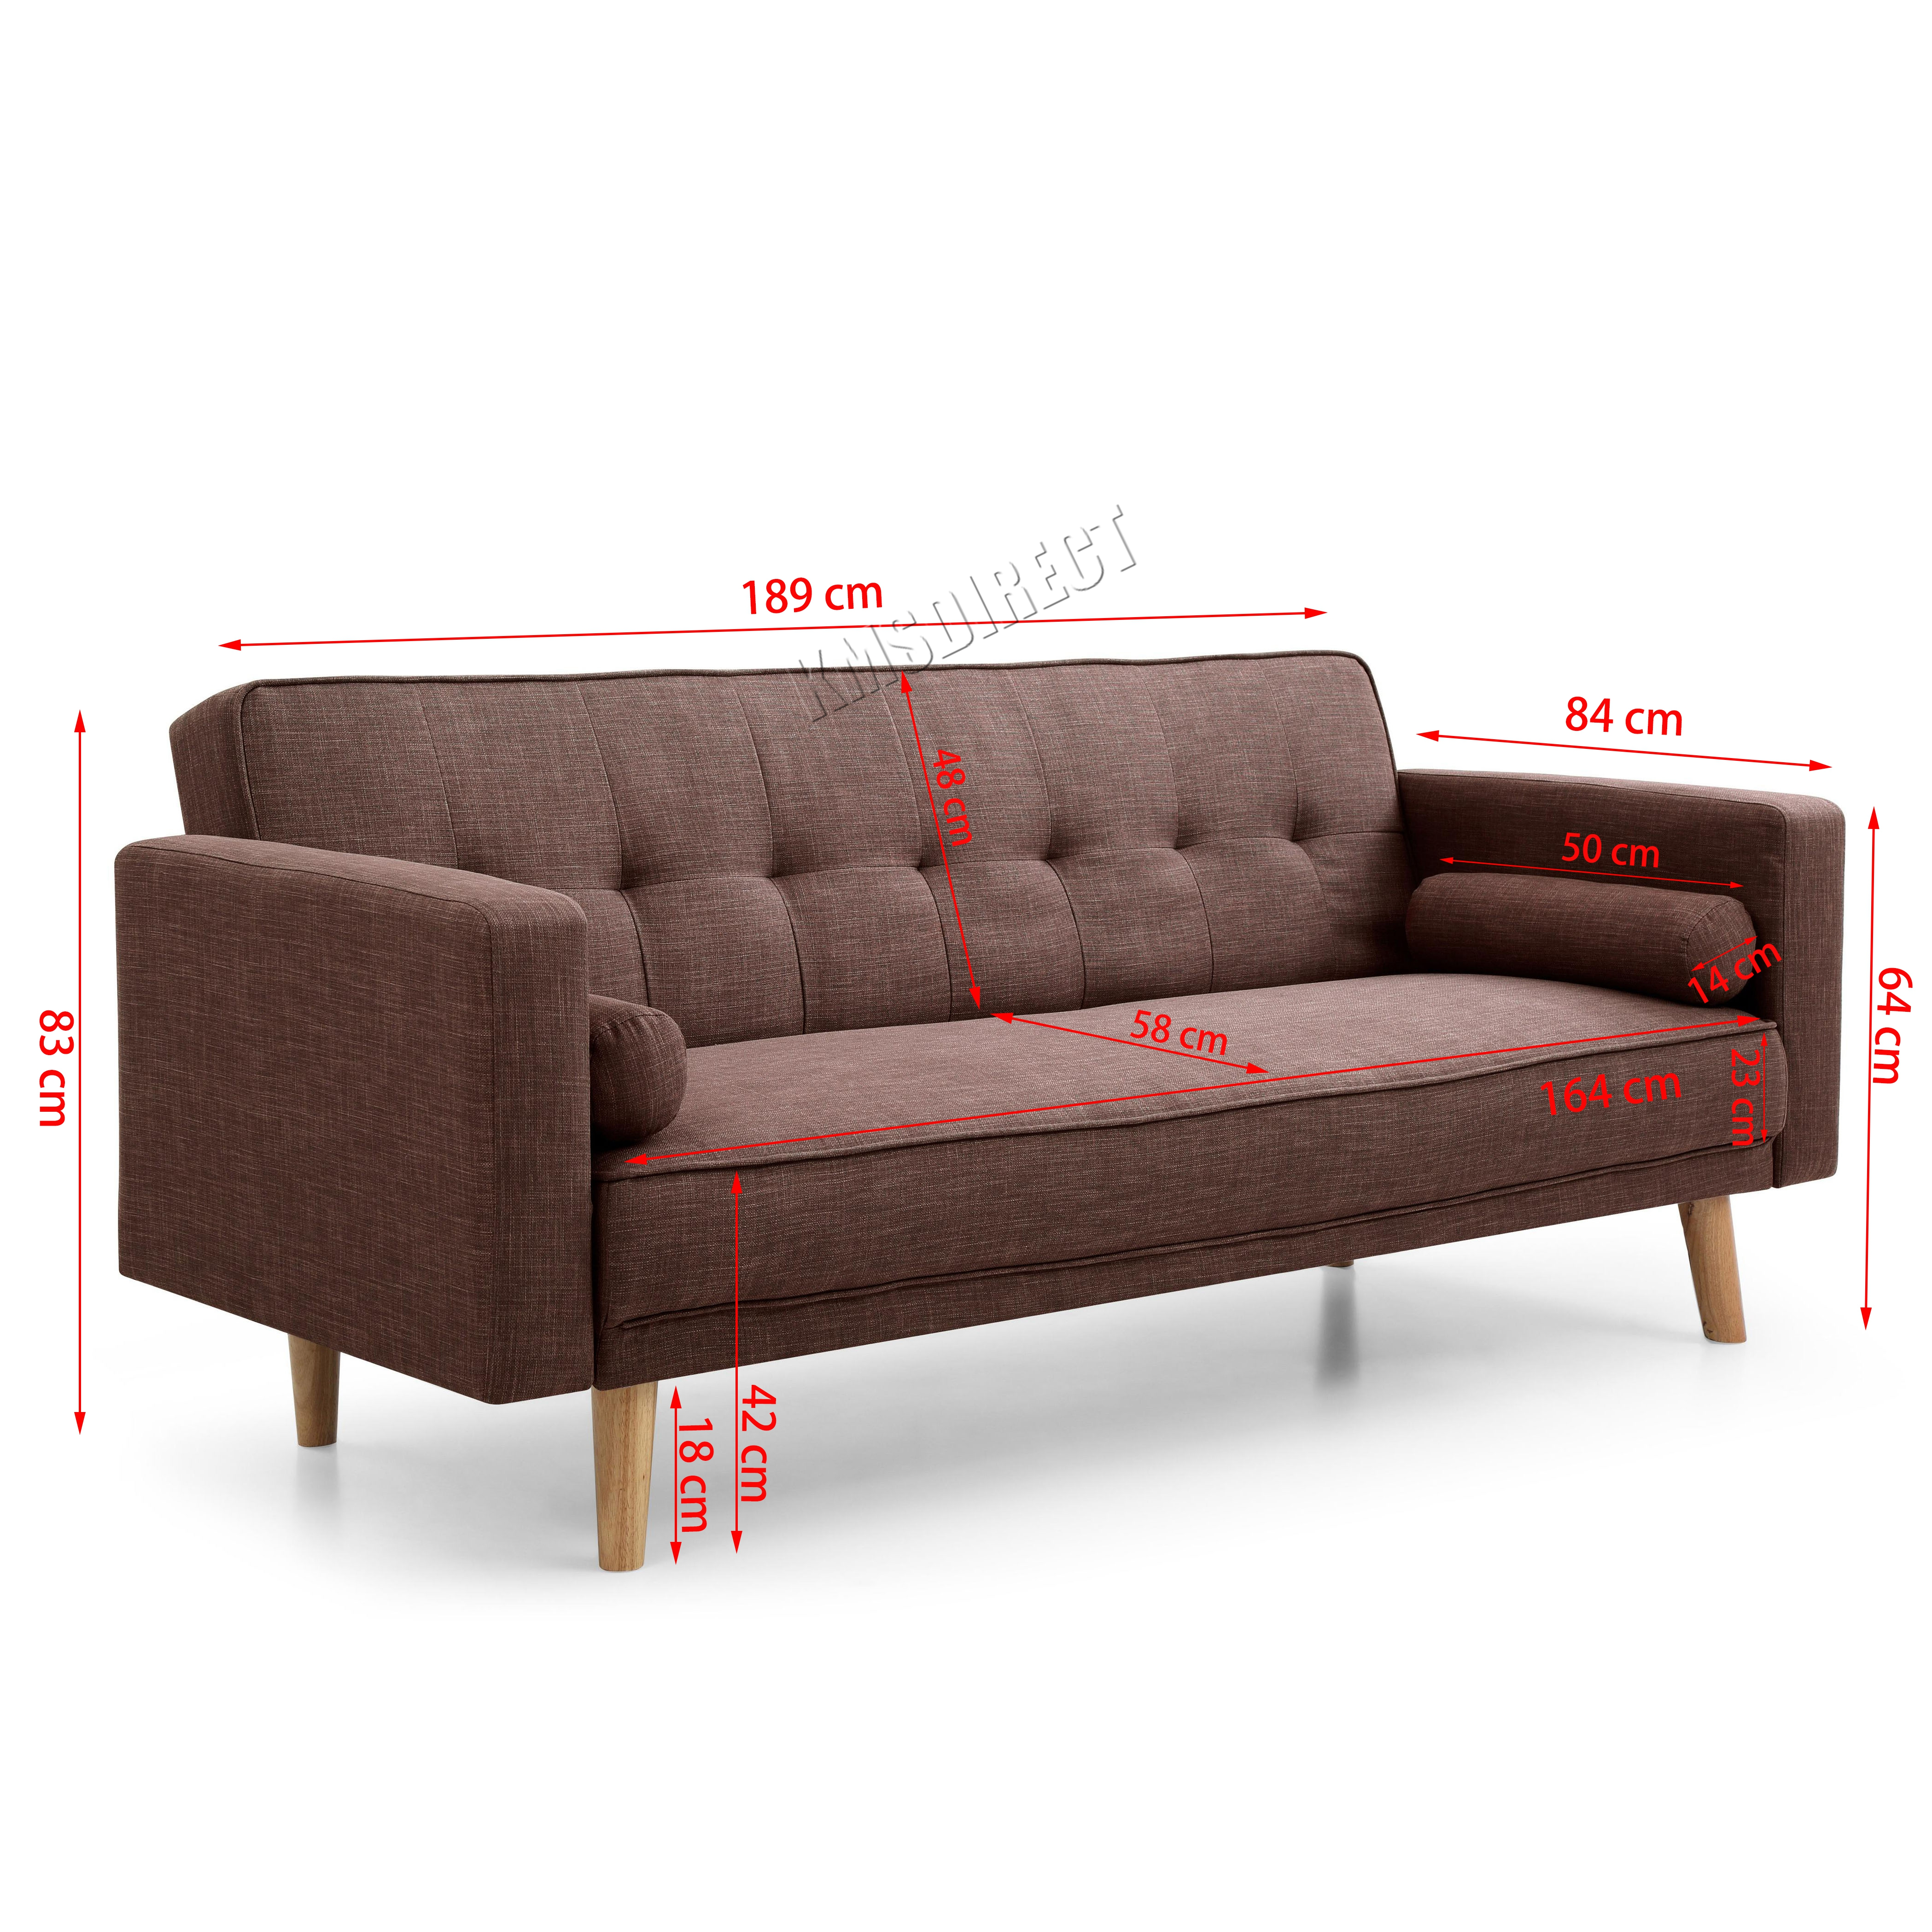 Westwood fabric sofa bed 3 seater couch luxury modern home for Sofa bed 1 seater